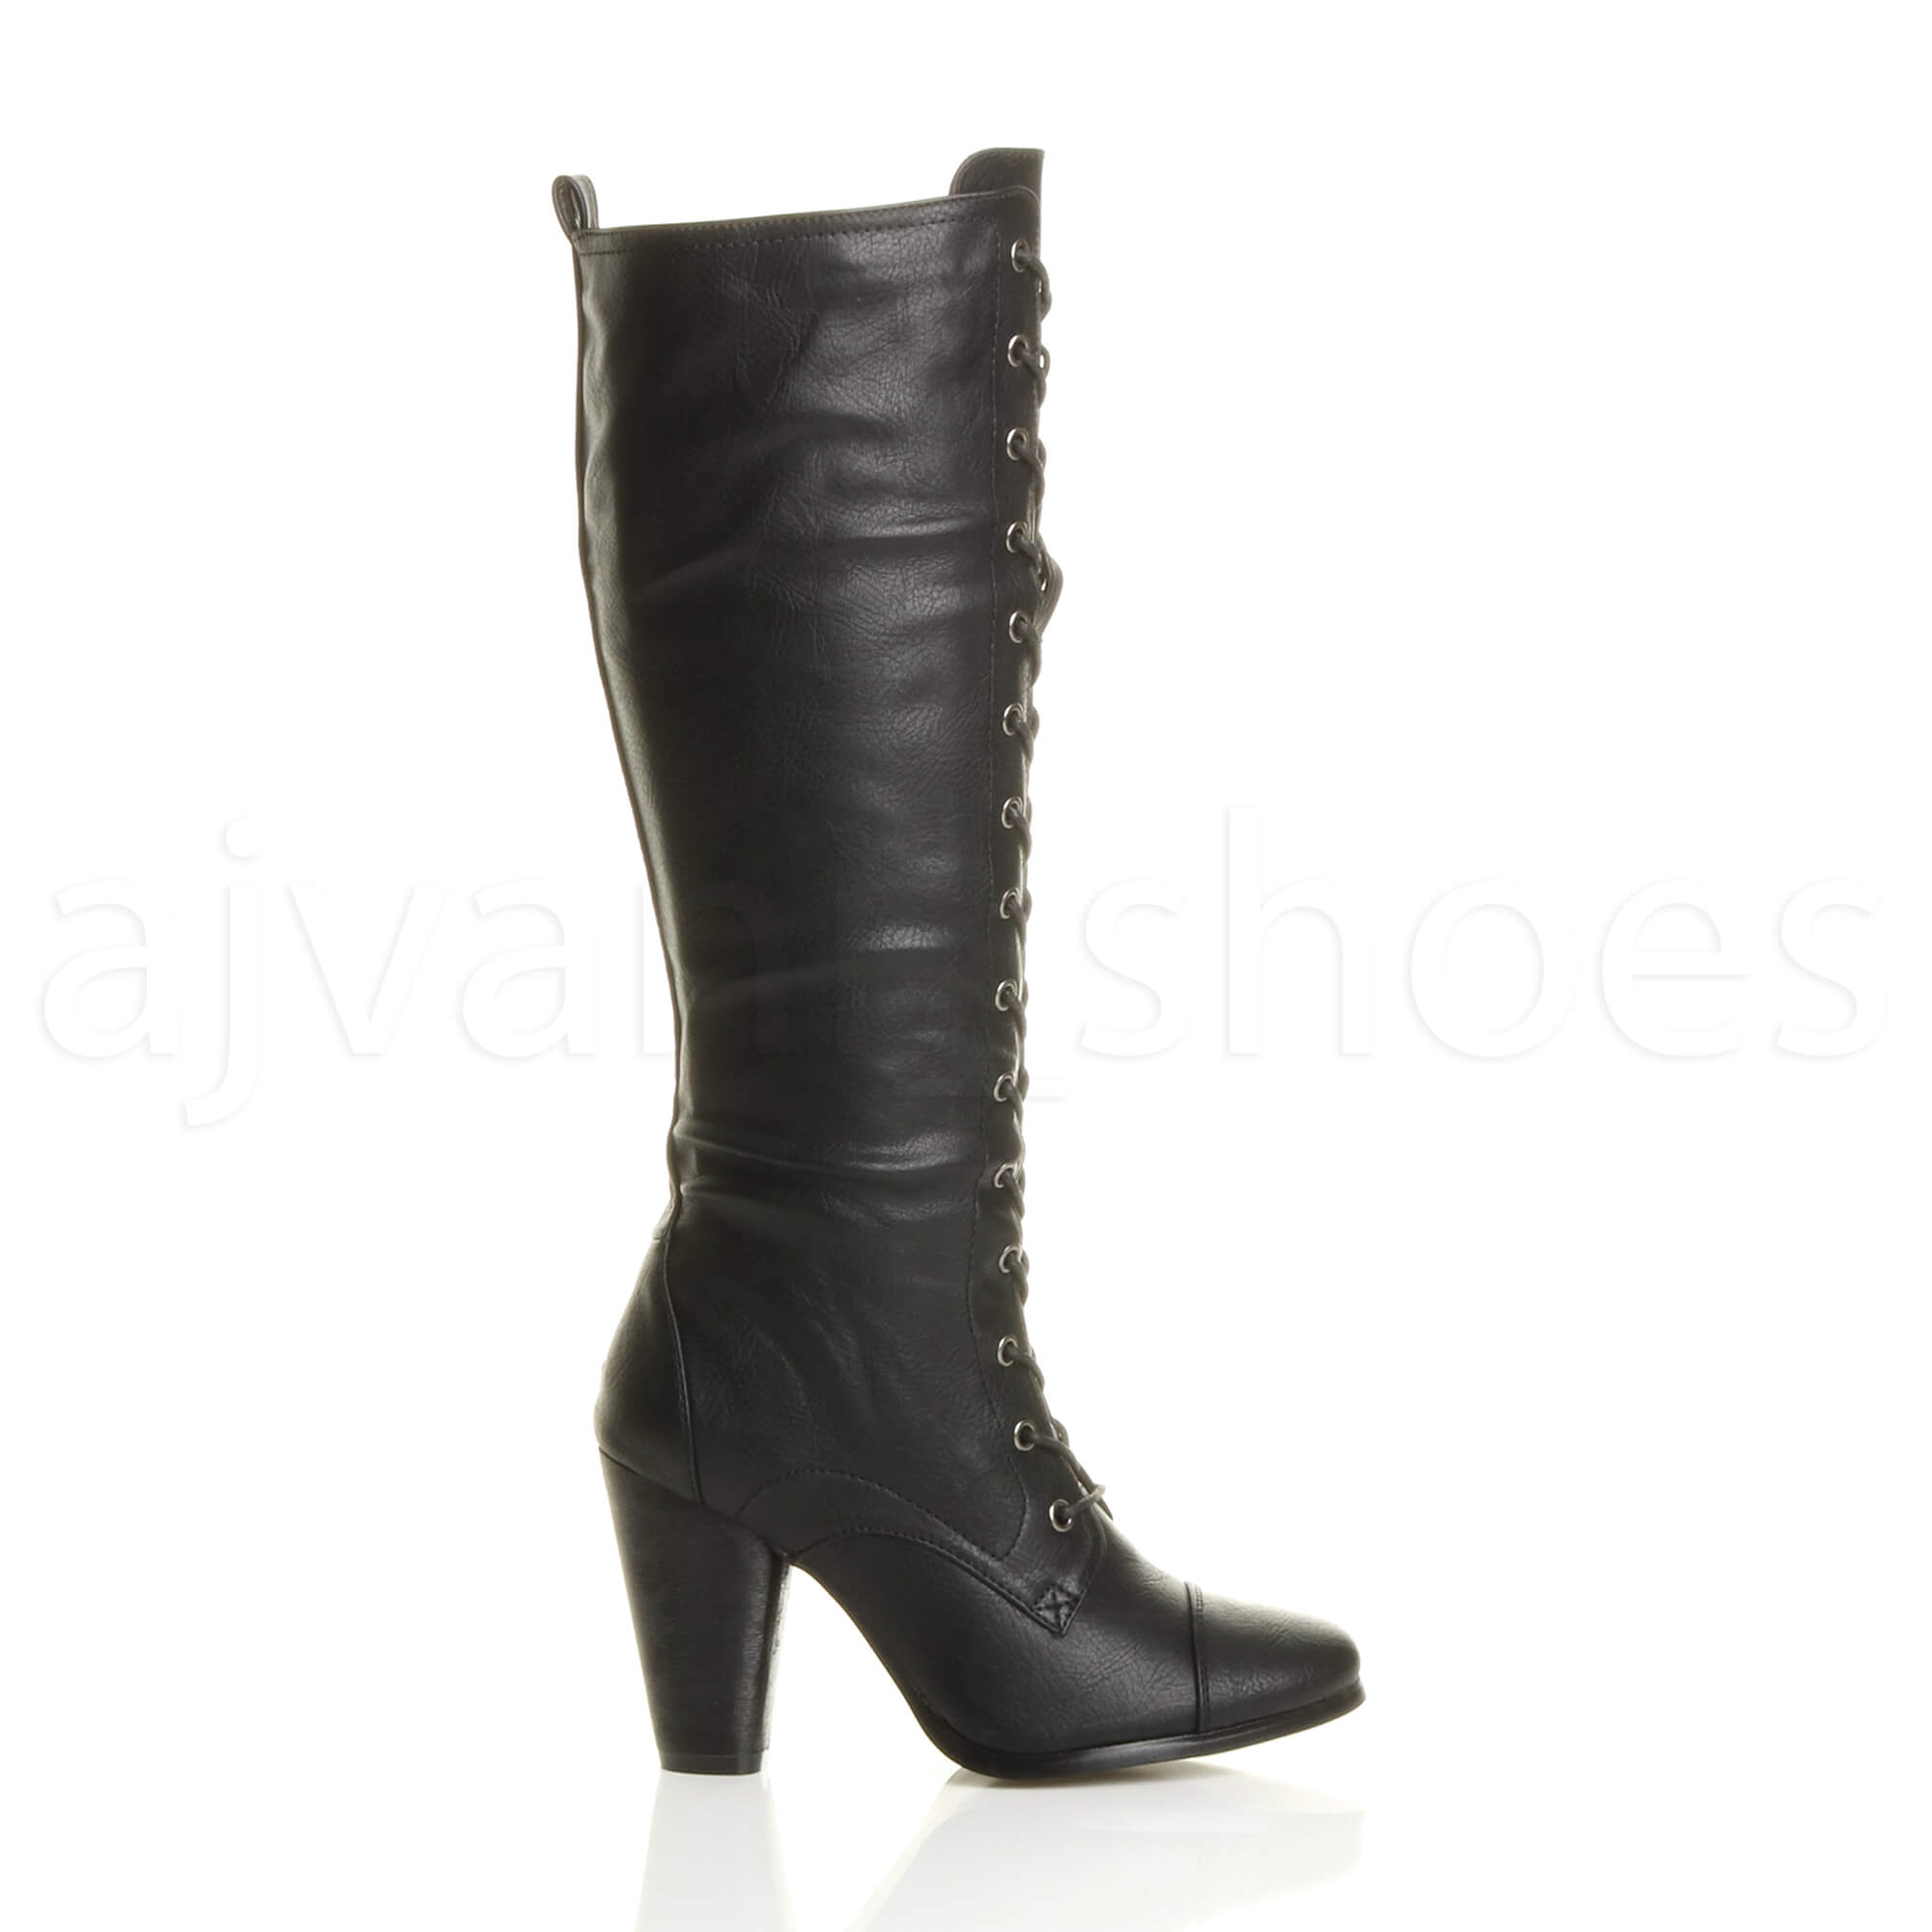 Womens Black Knee High Biker Boots